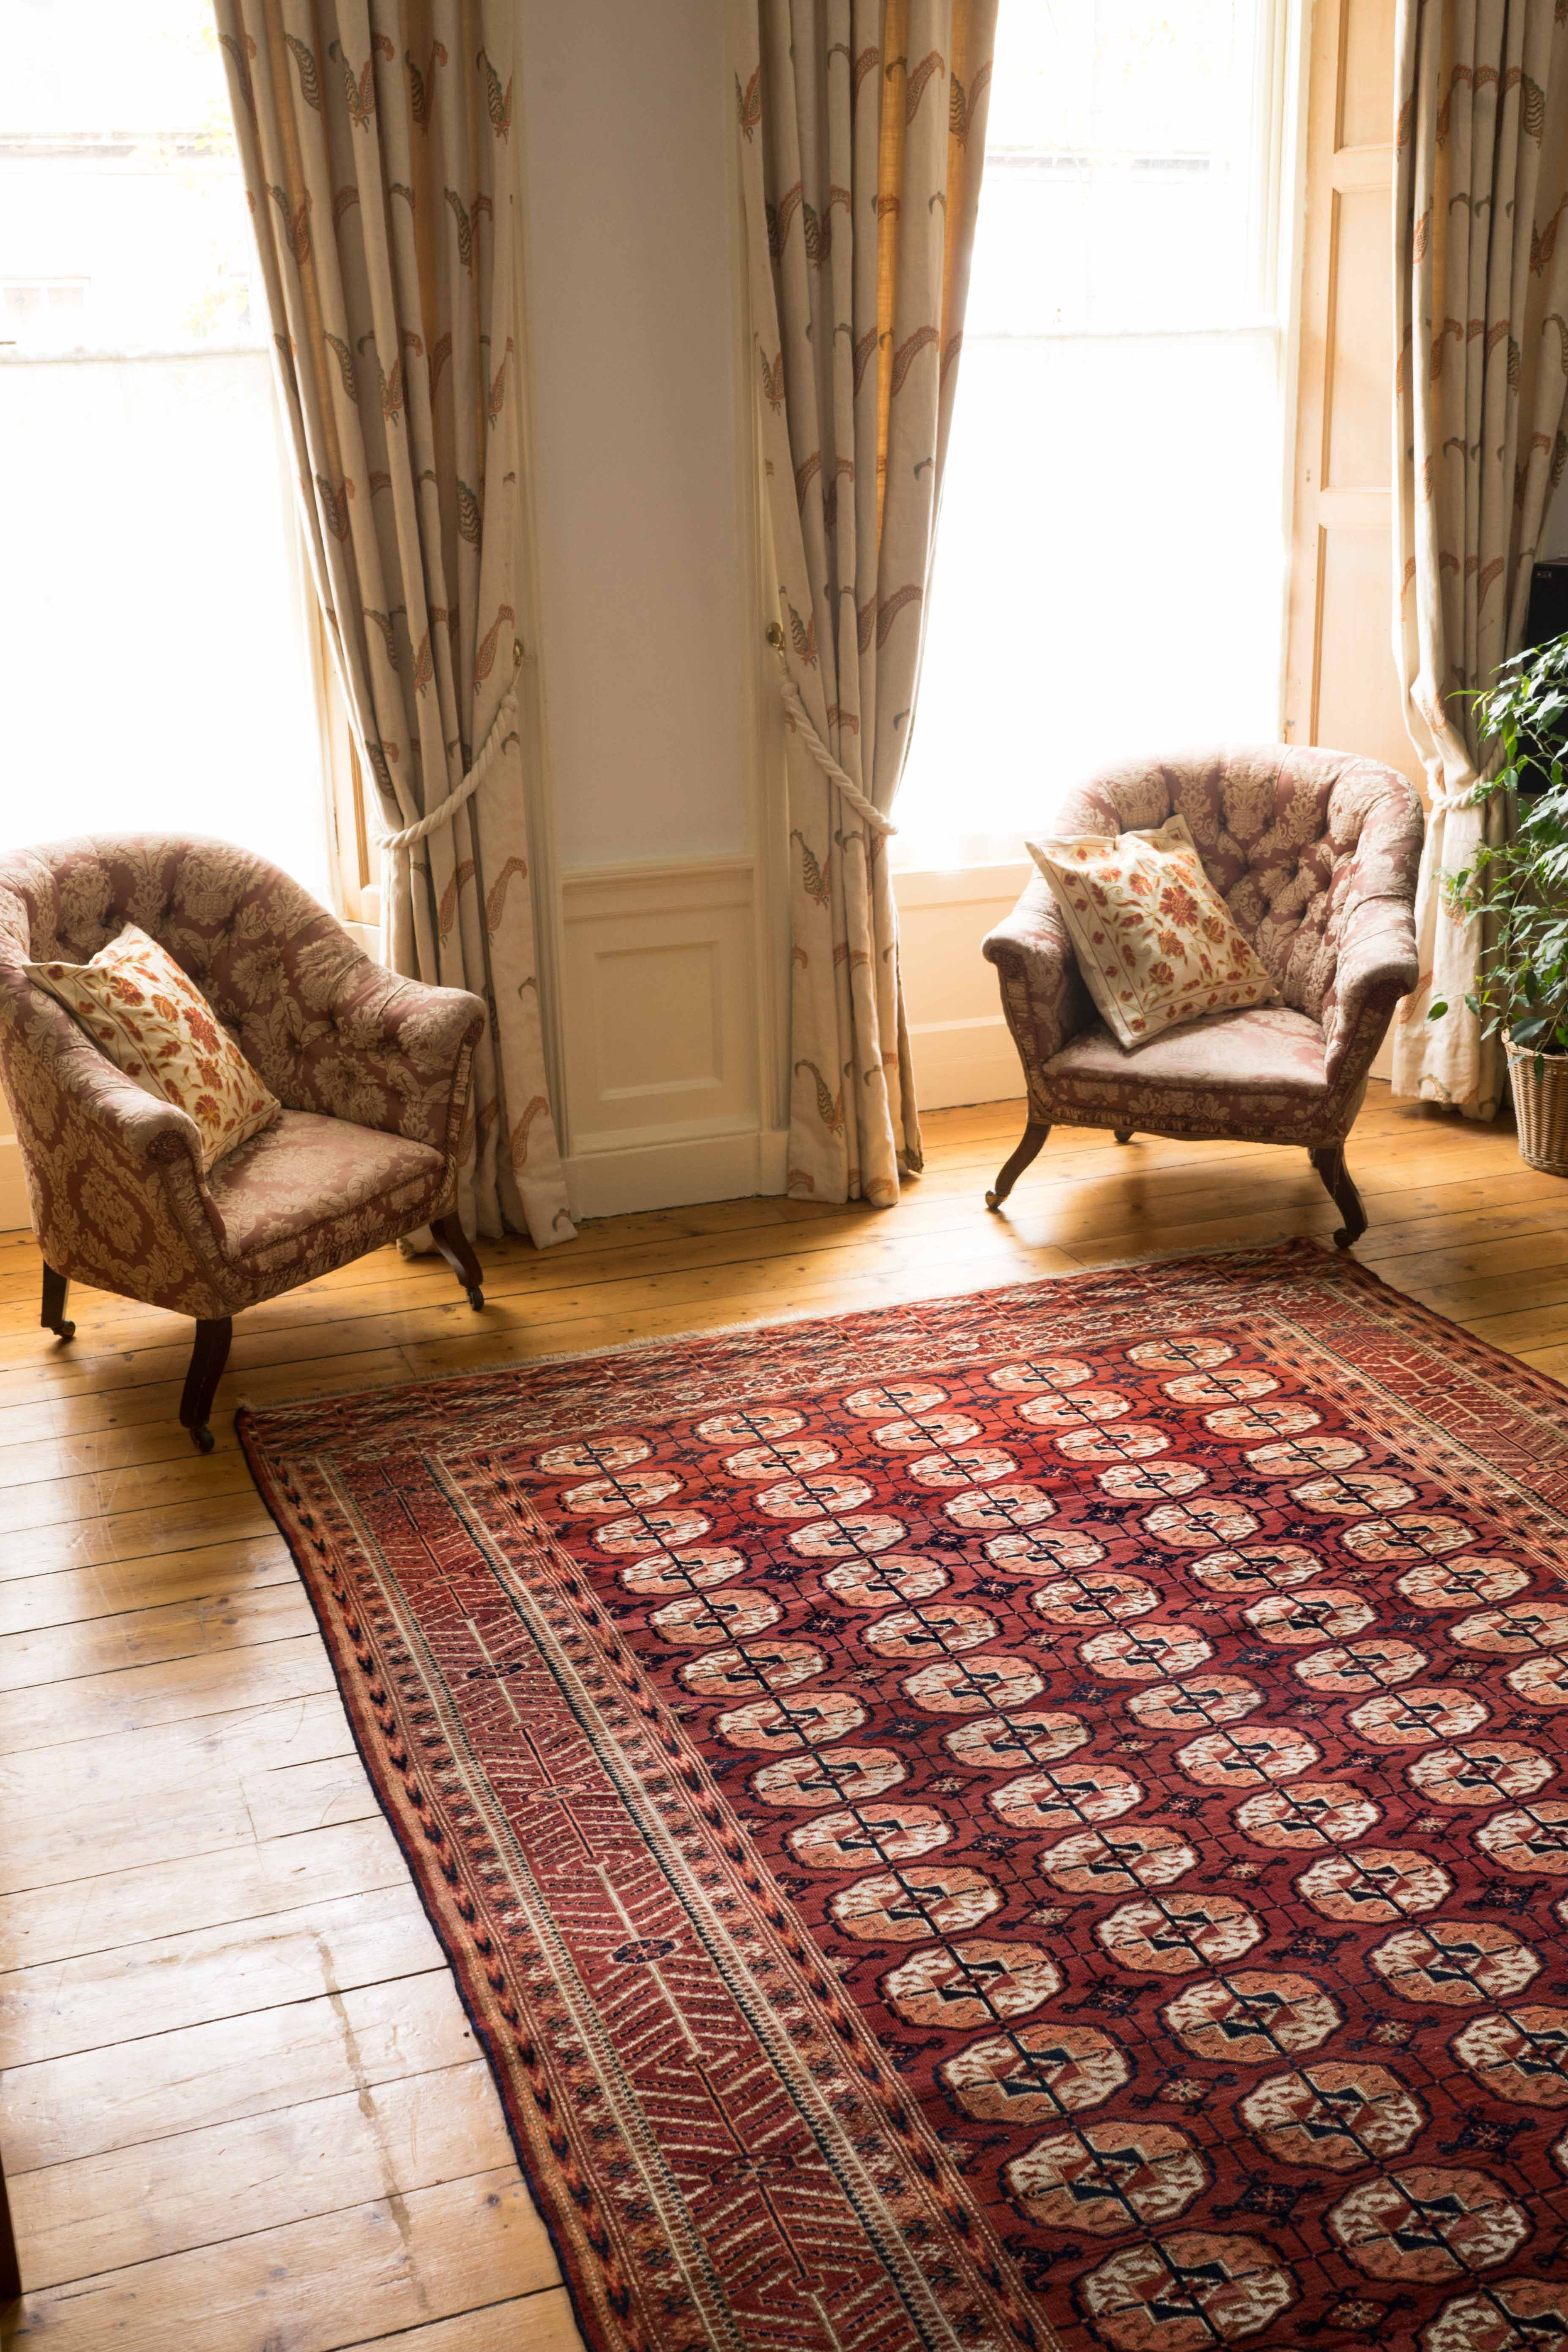 rugdover dover london prepare innovative beautiful to rug for rugs tent sale architecture with throughout annual design household welcome